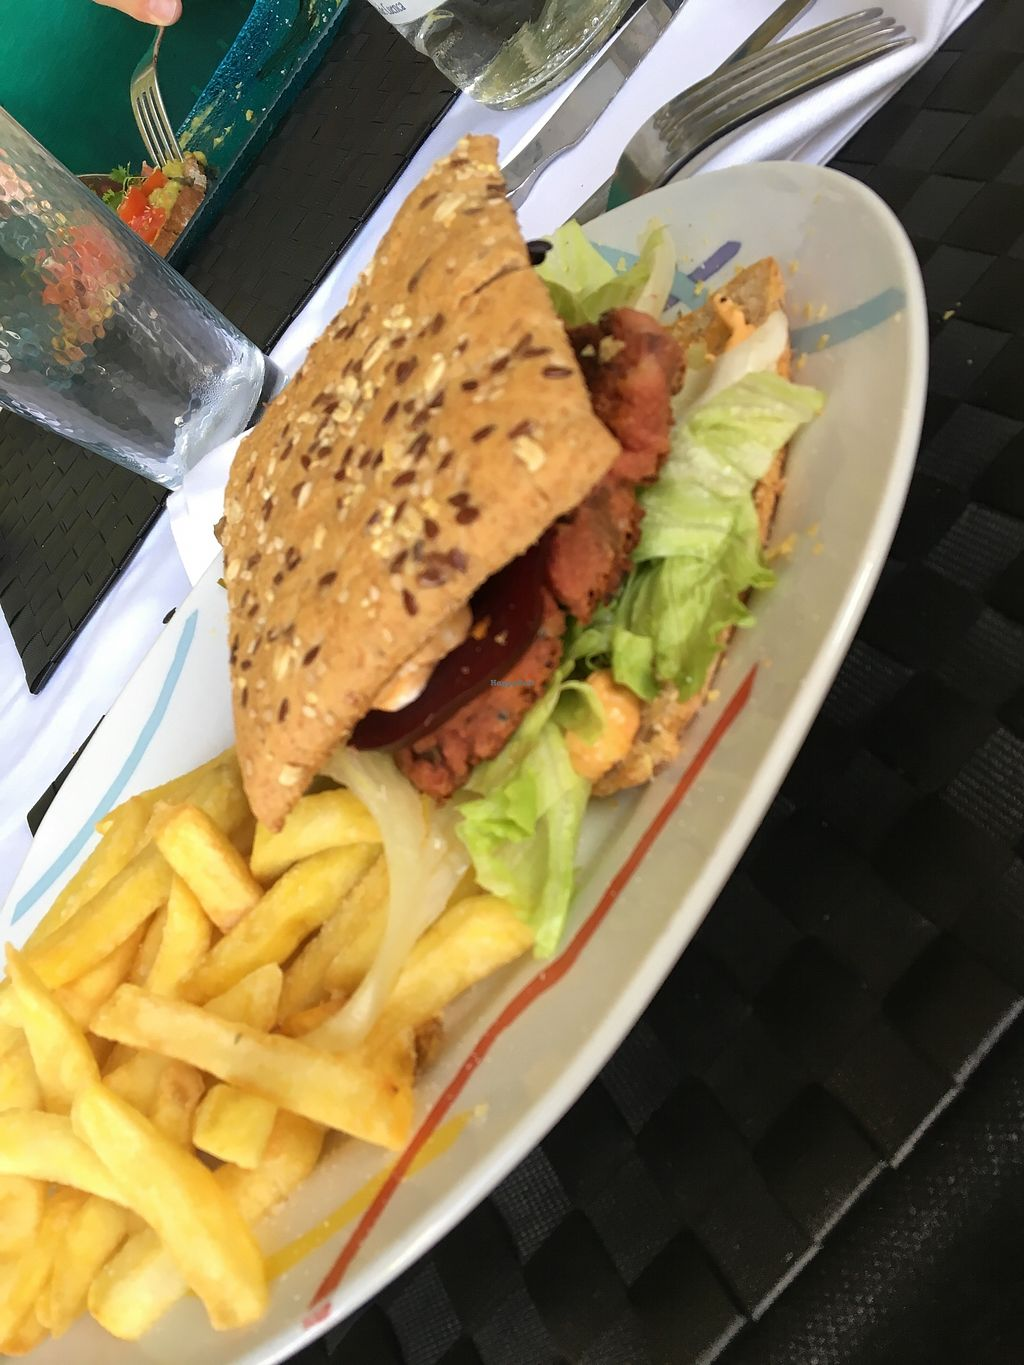 "Photo of True To Life  by <a href=""/members/profile/katiemealing"">katiemealing</a> <br/>Seitan burger  <br/> August 6, 2017  - <a href='/contact/abuse/image/80193/289911'>Report</a>"